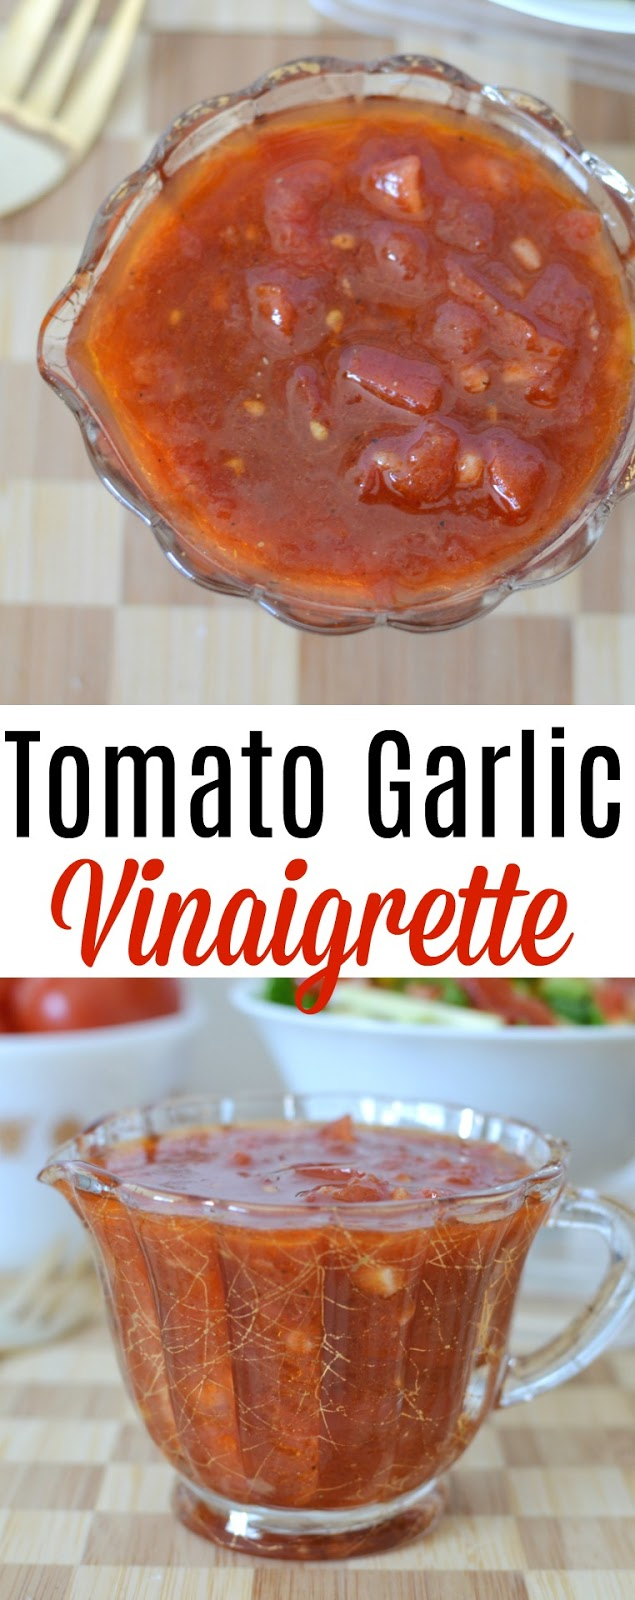 This summer tomato garlic dressing is perfect with lettuce salads, pasta salads and delicious drizzled over roasted vegetables! Skip the store bought stuff and make this instead!